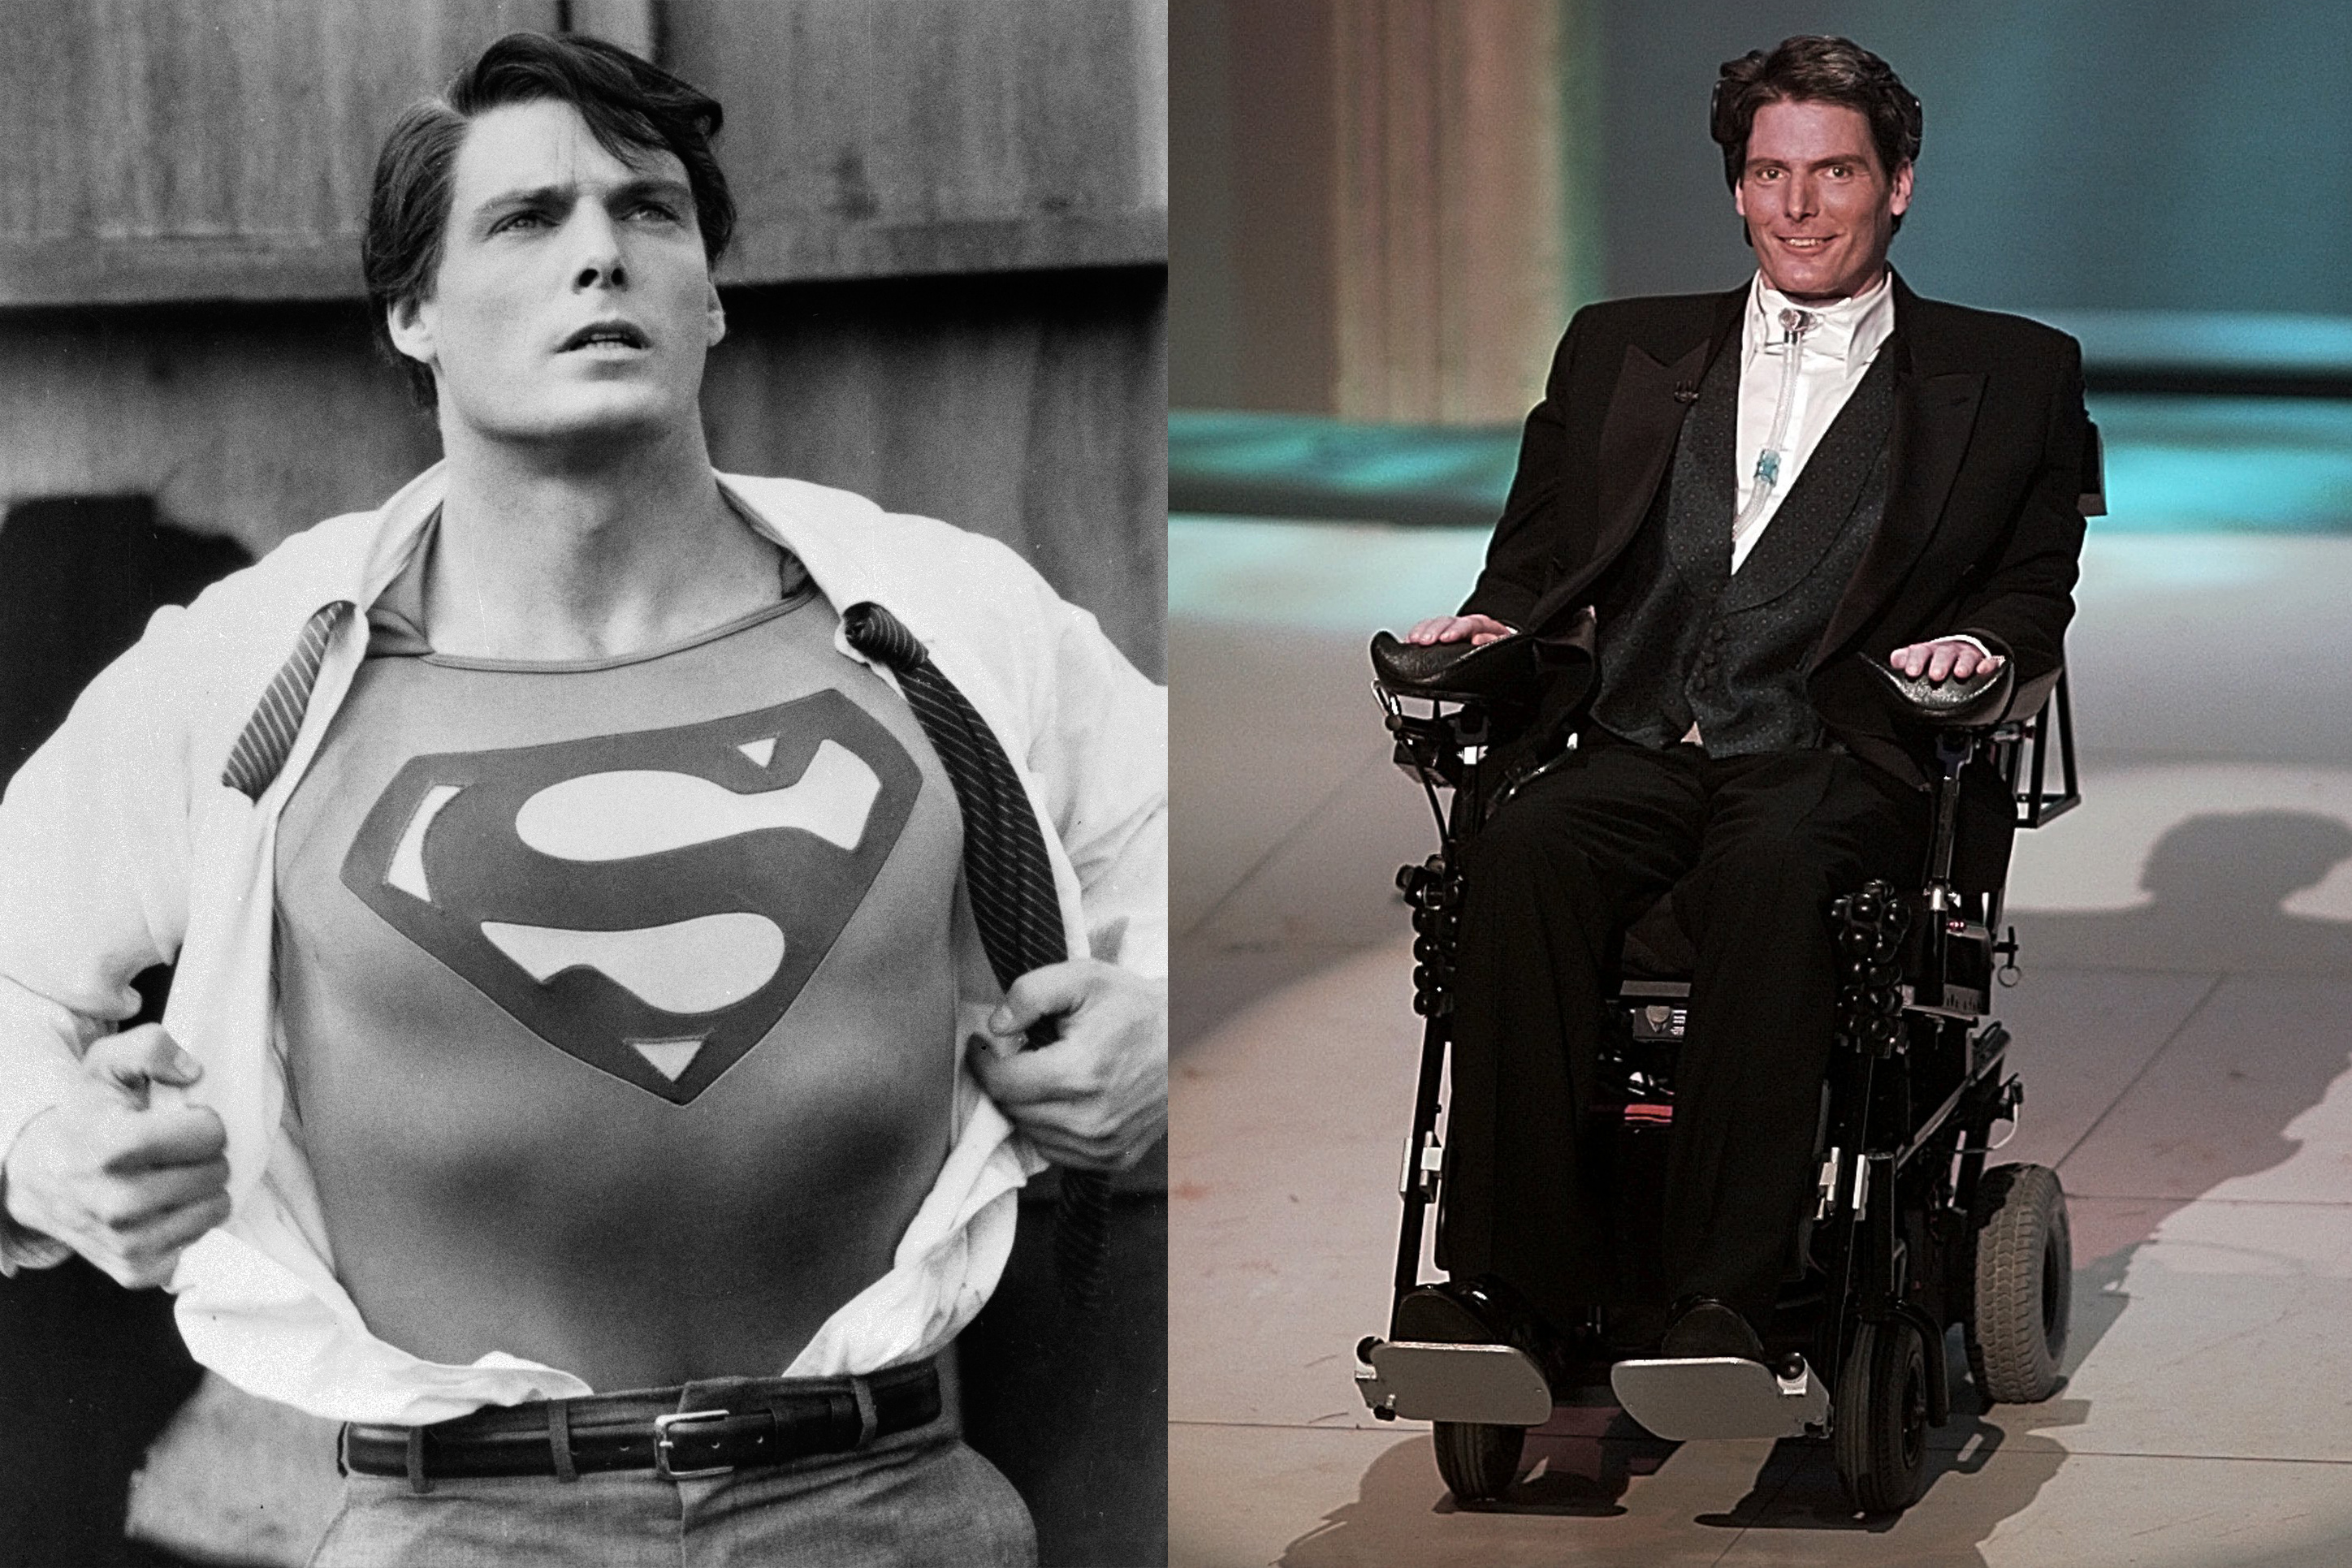 After starring in four Superman films throughout the late '70s and early '80s, Christopher Reeve was paralyzed in a horse riding accident in 1995. He continued to appear on TV, including in Smallville, until he passed away in 2004.